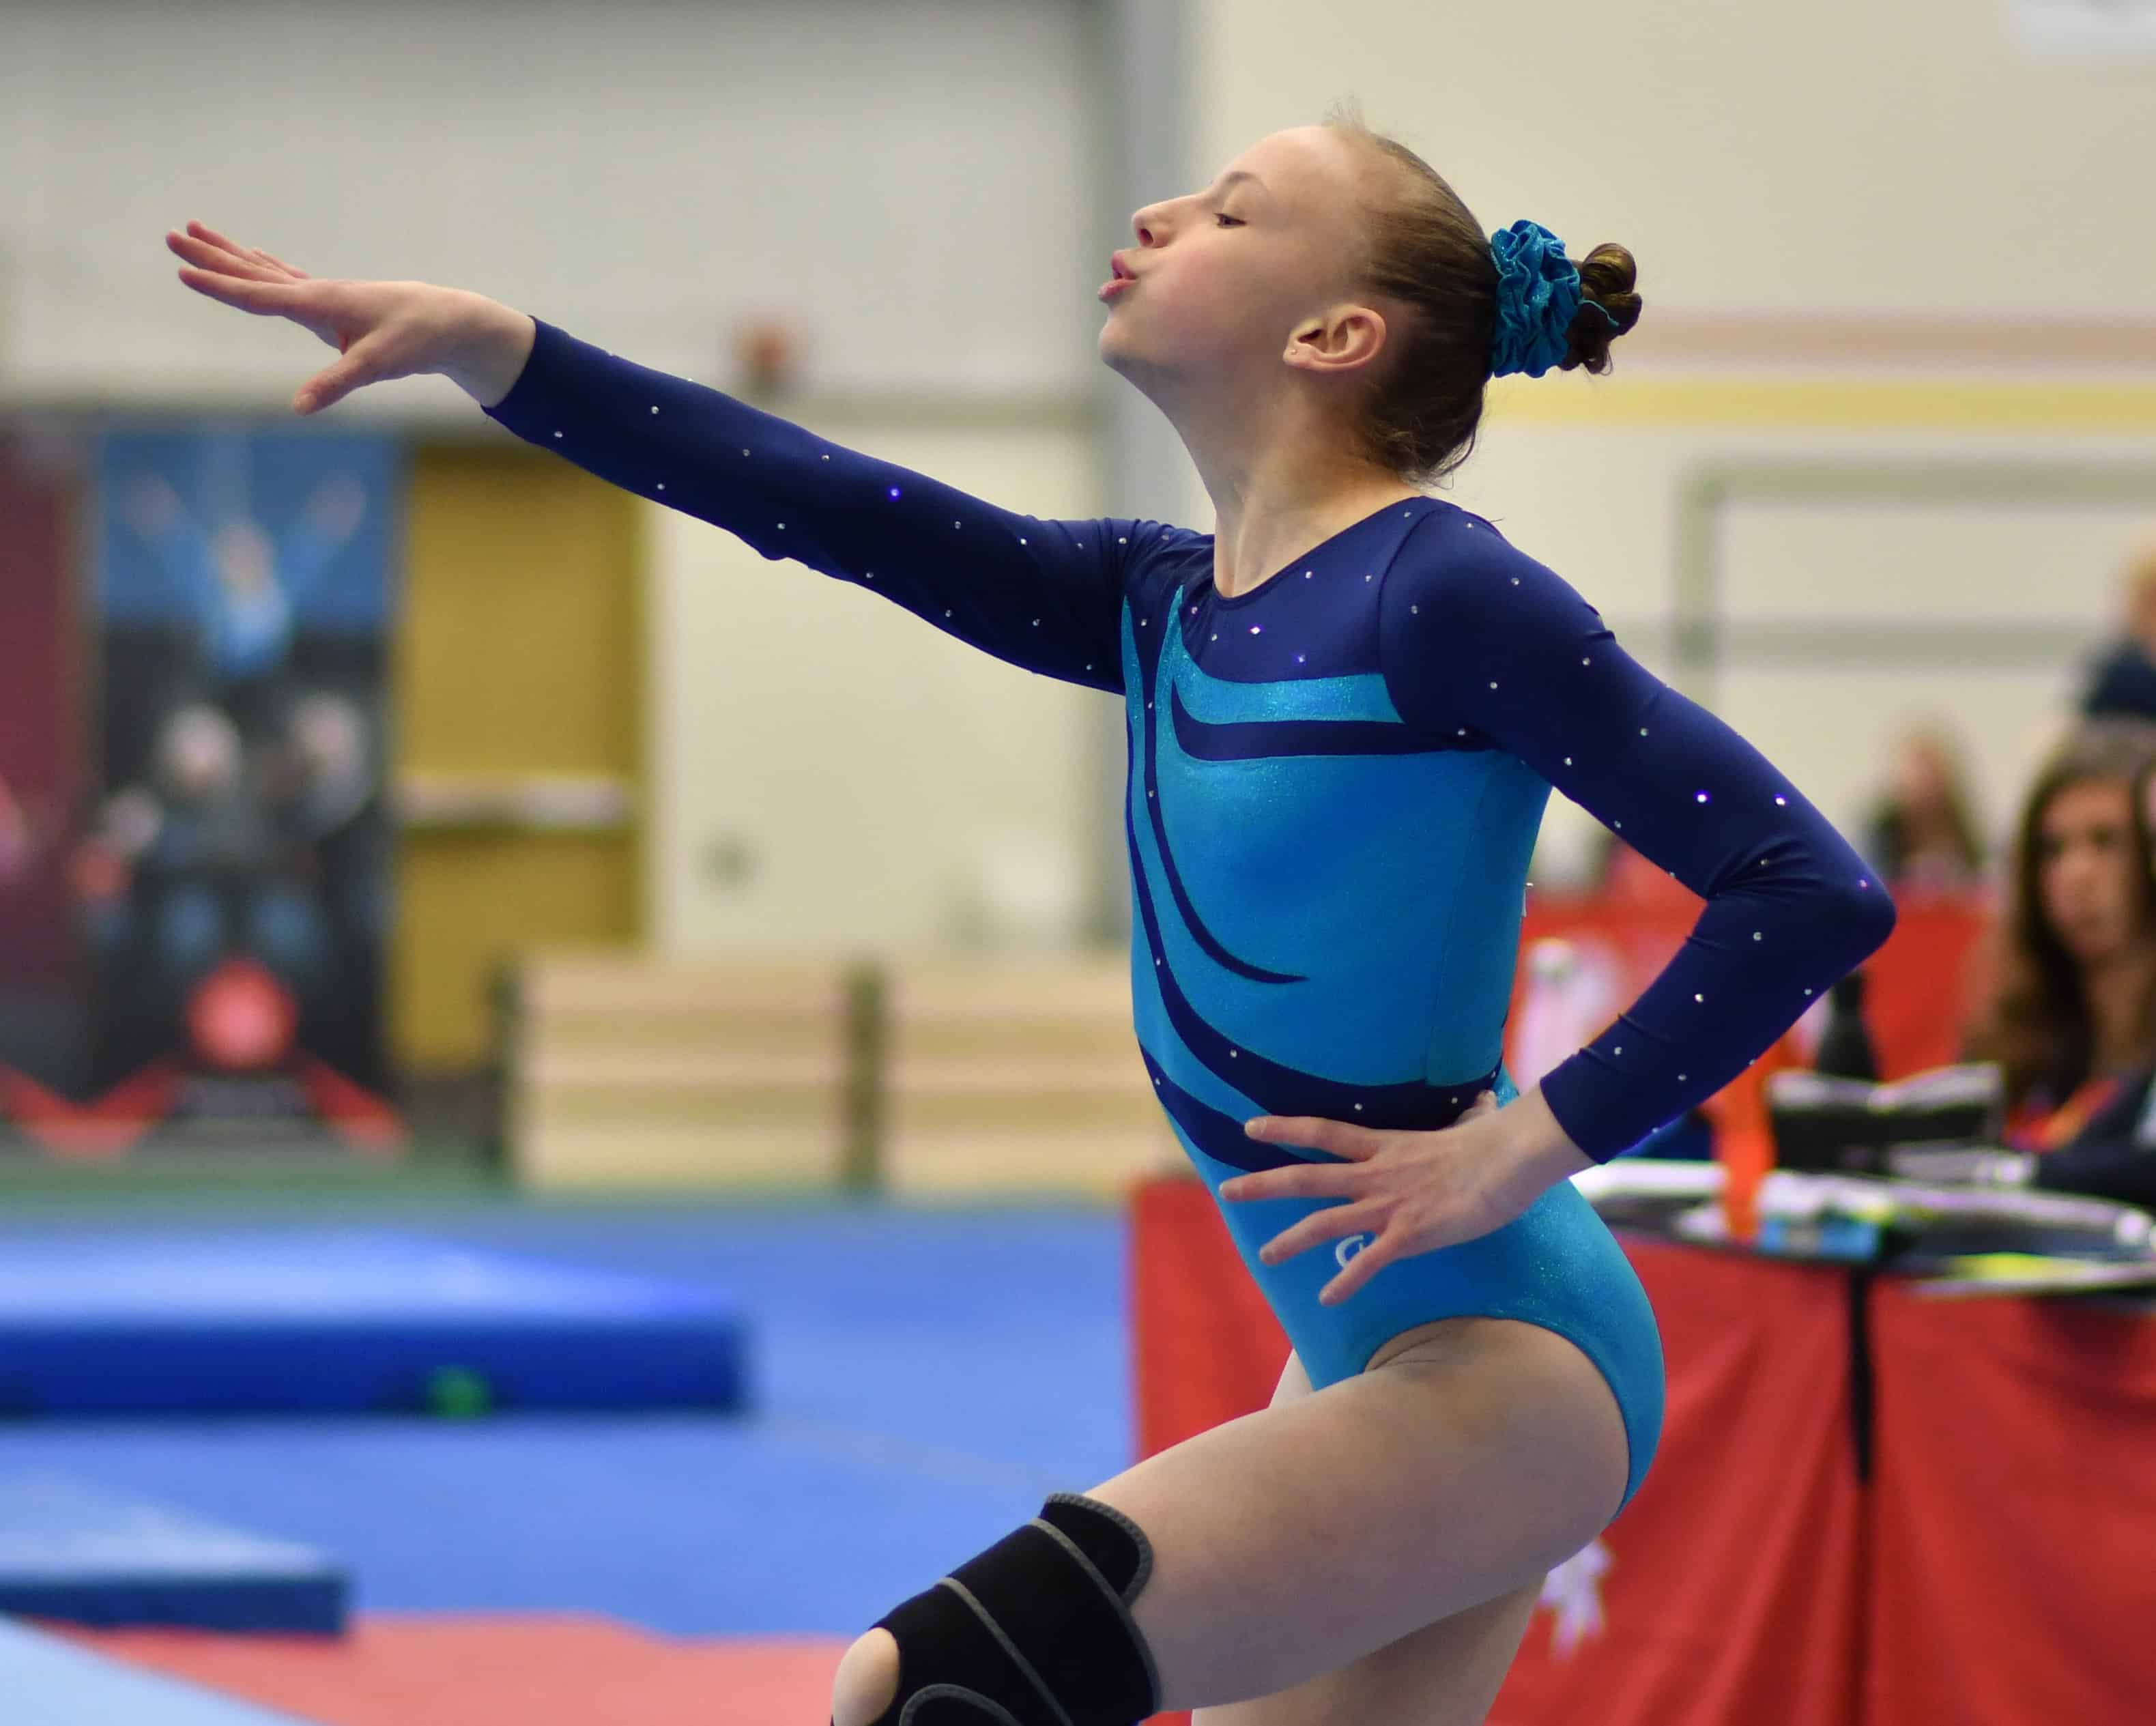 Lindsey Woodford performs her routine during the team gymnastics competition at the Canada Winter Games in Red Deer, Alta., on Sunday. Rod Ince/Canada Winter Games photo